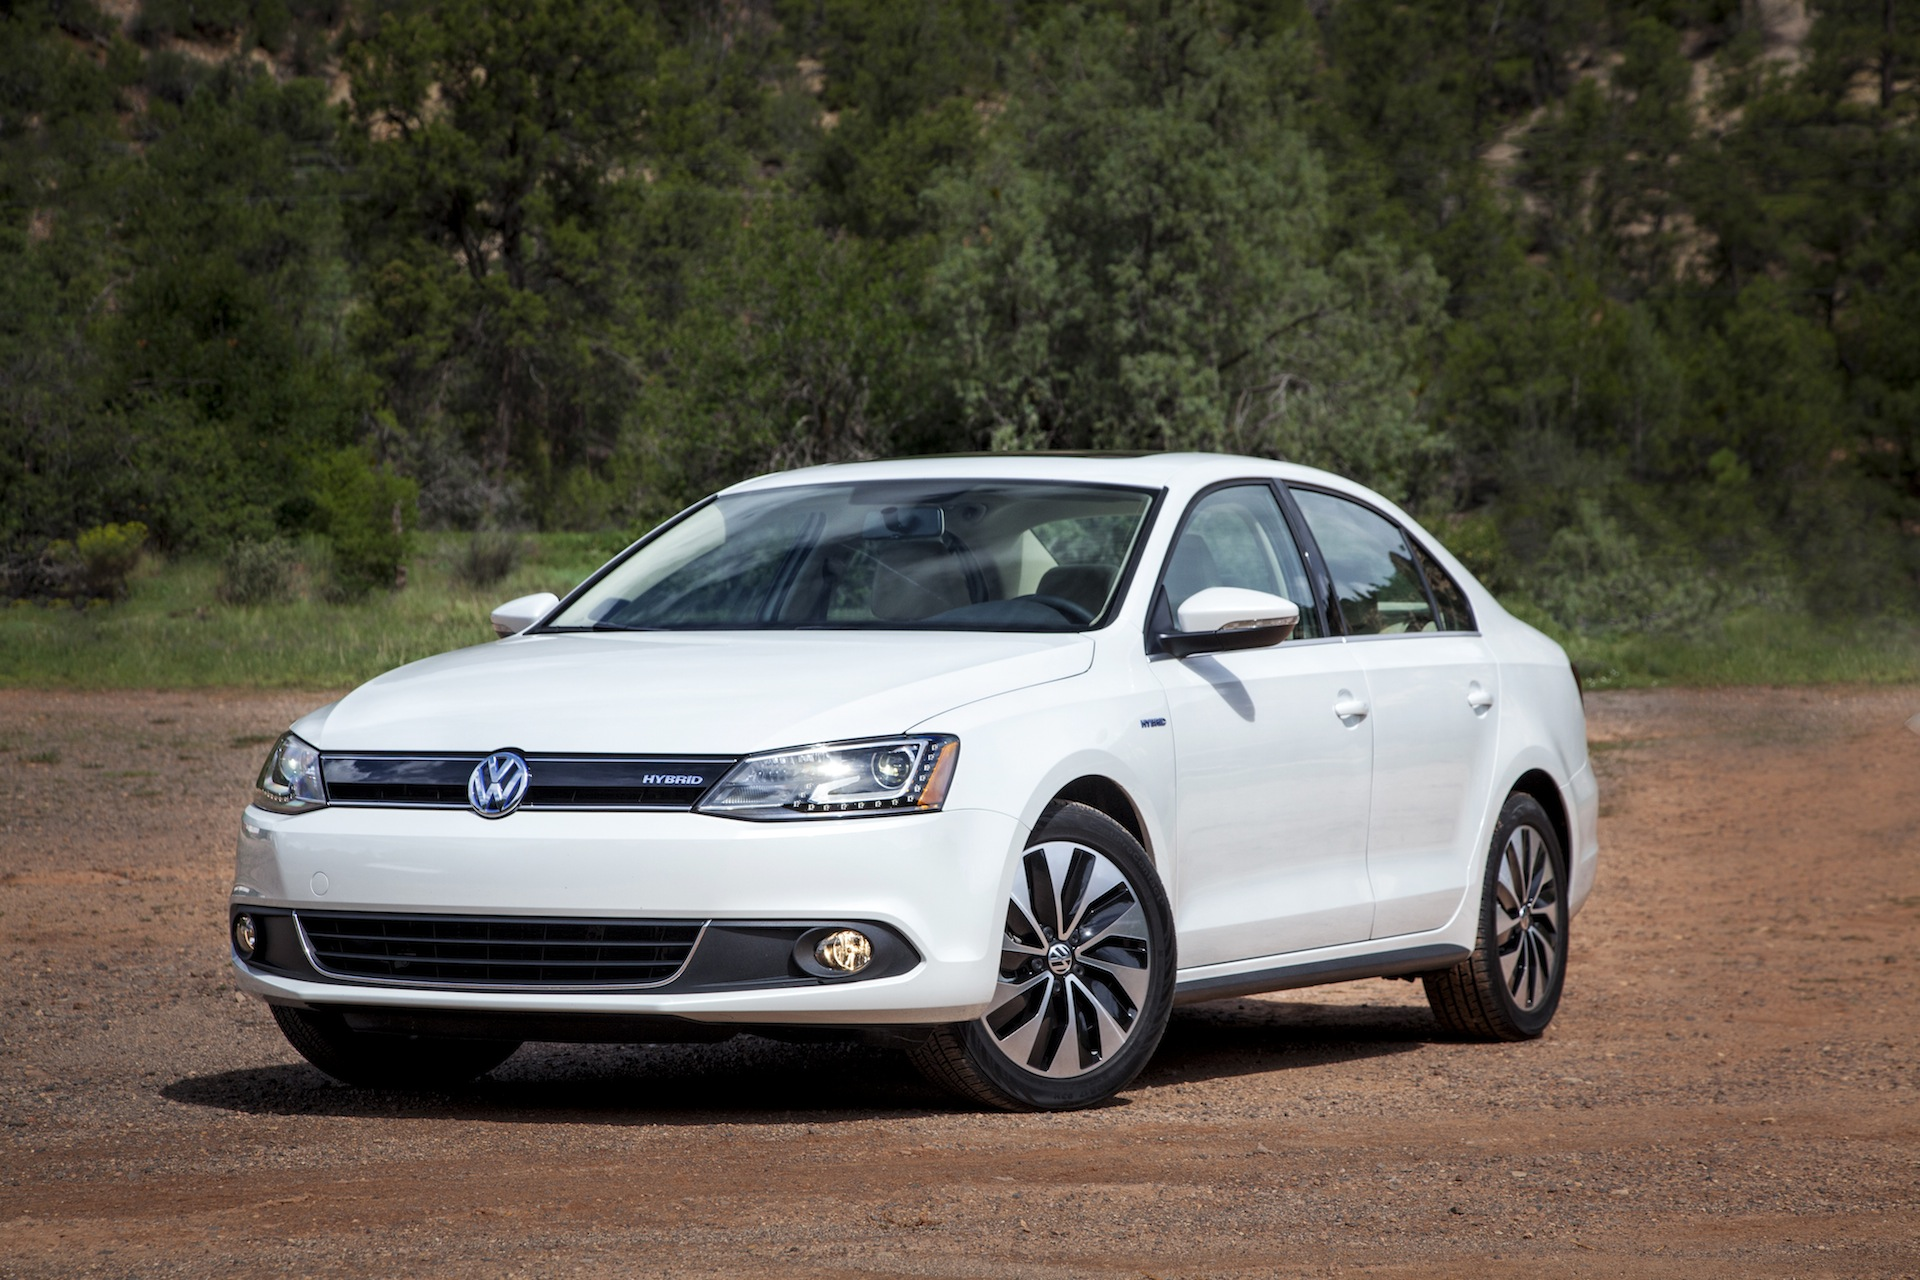 Volkswagen Jetta Hybrid pulled from VW s U S lineup in 2017